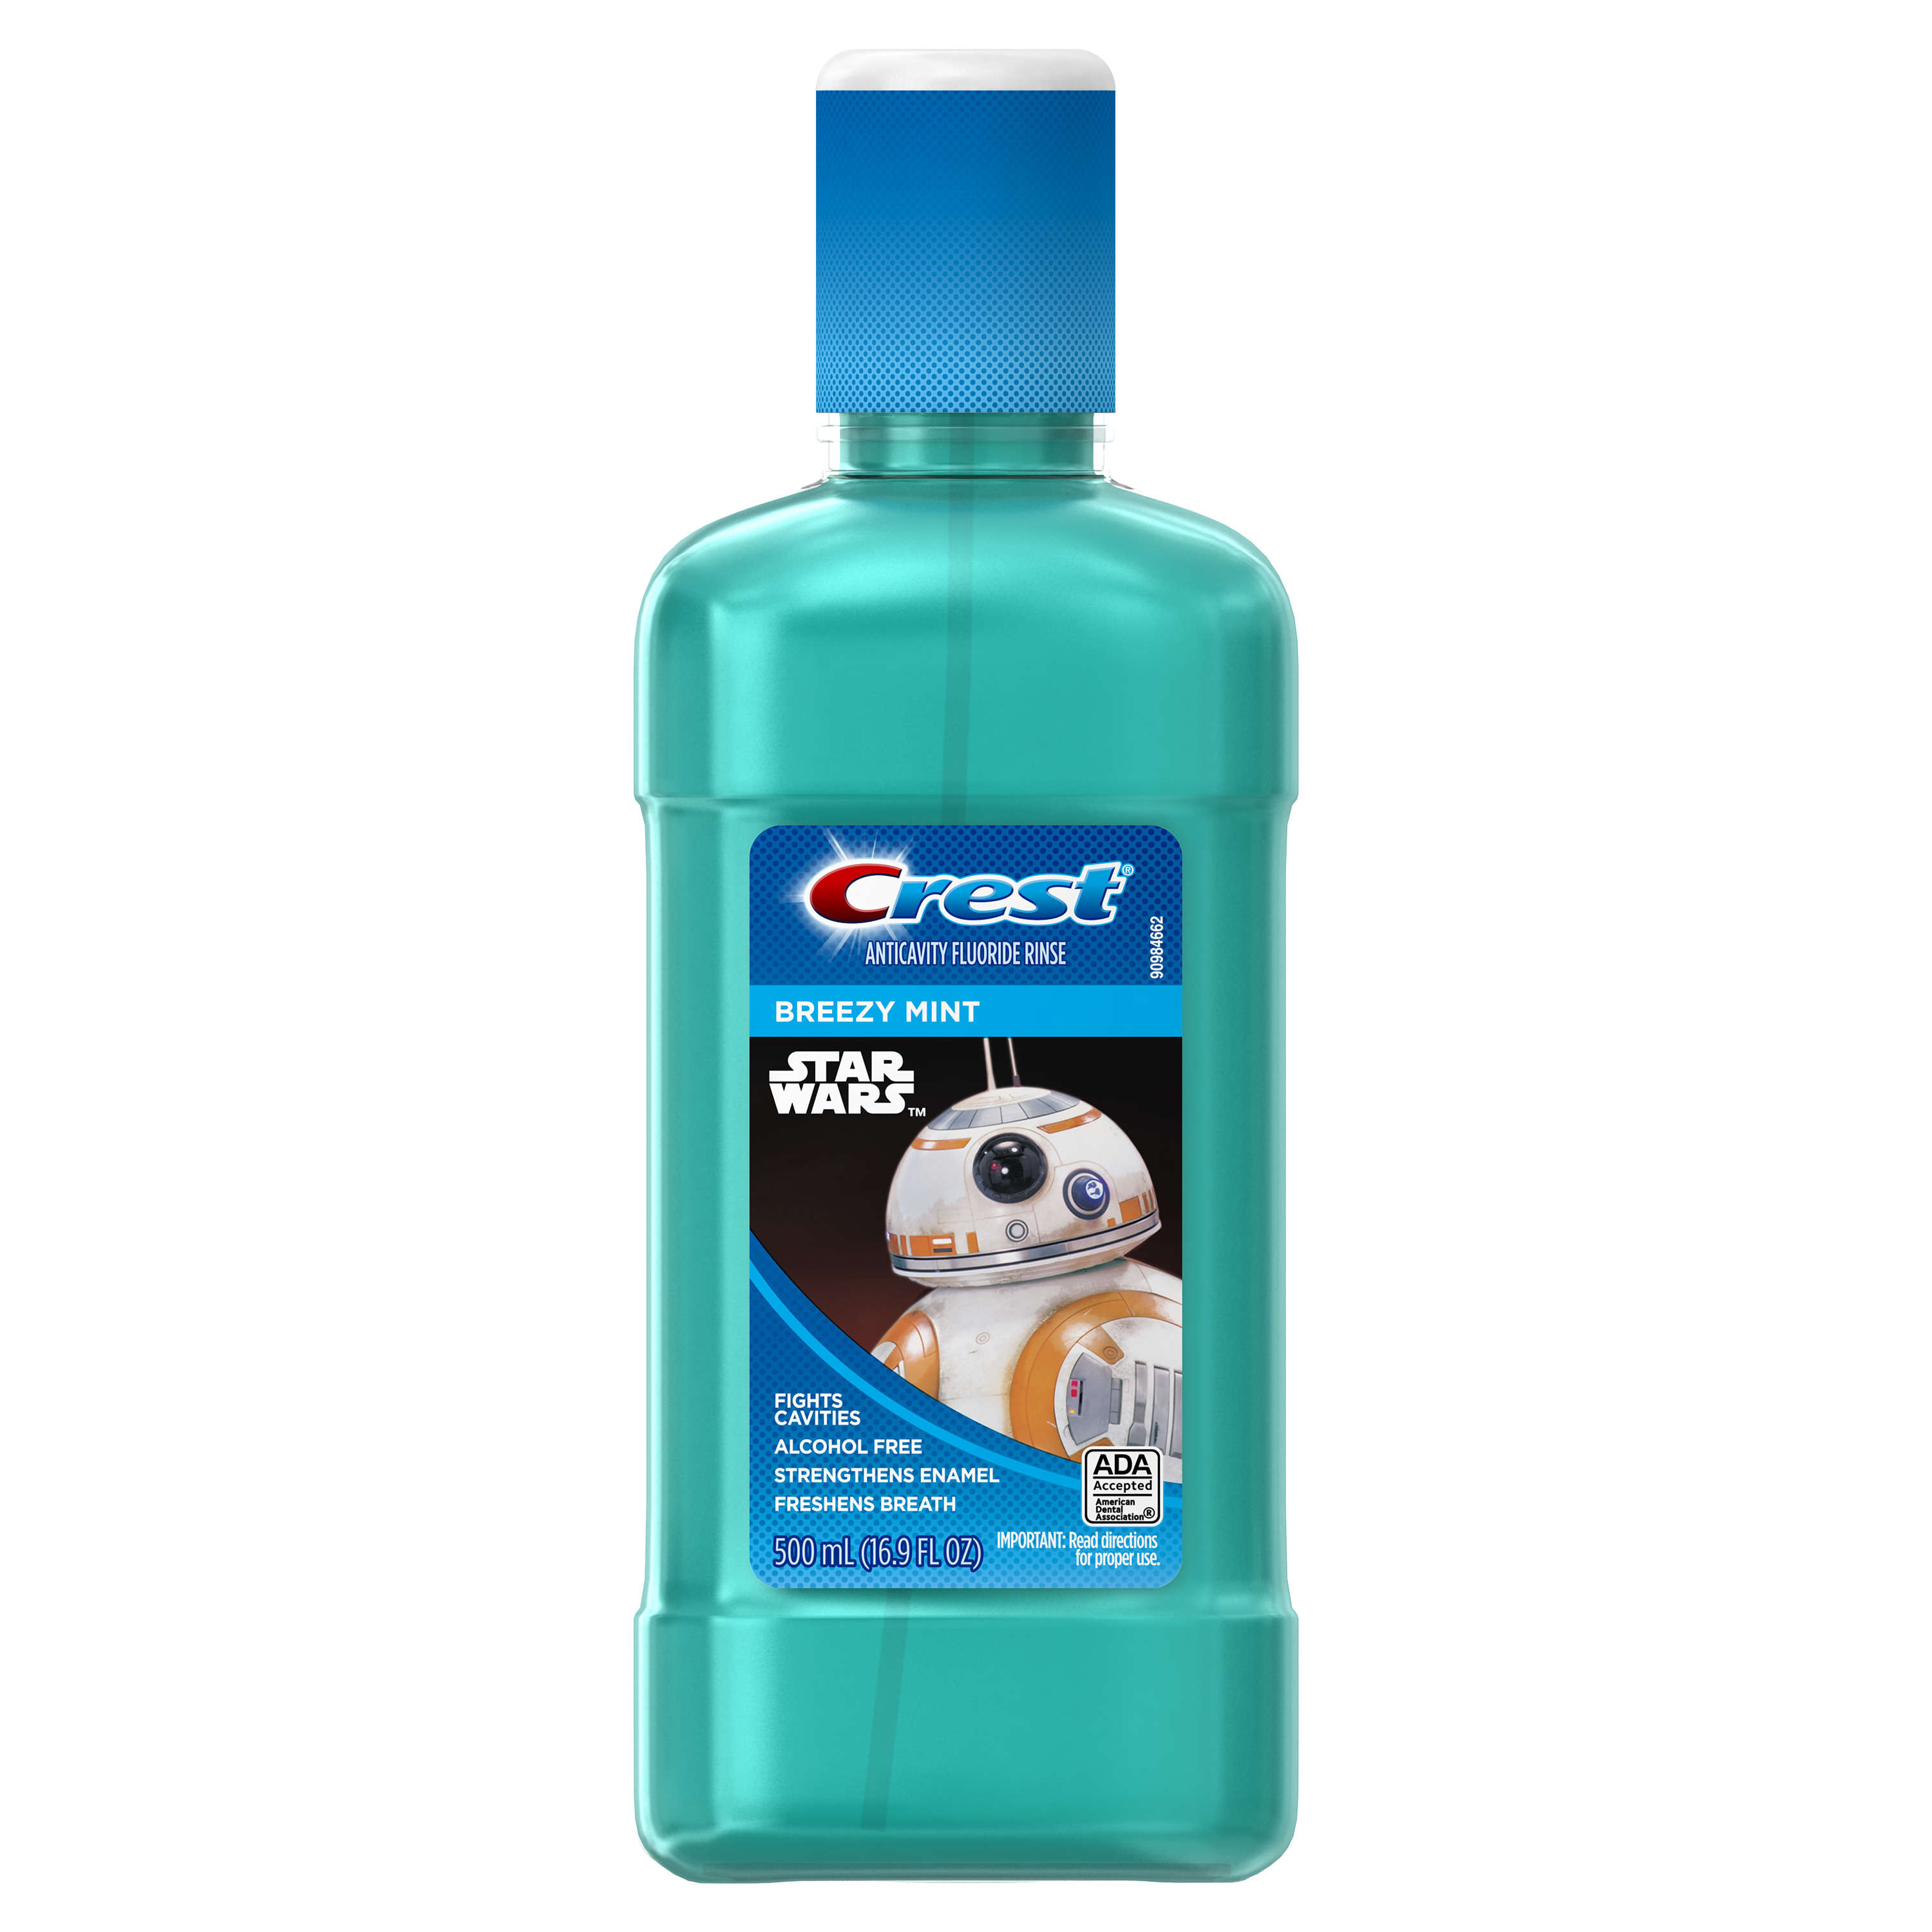 Crest Kid's Mouth Rinse featuring Disney's STAR WARS, 500 mL